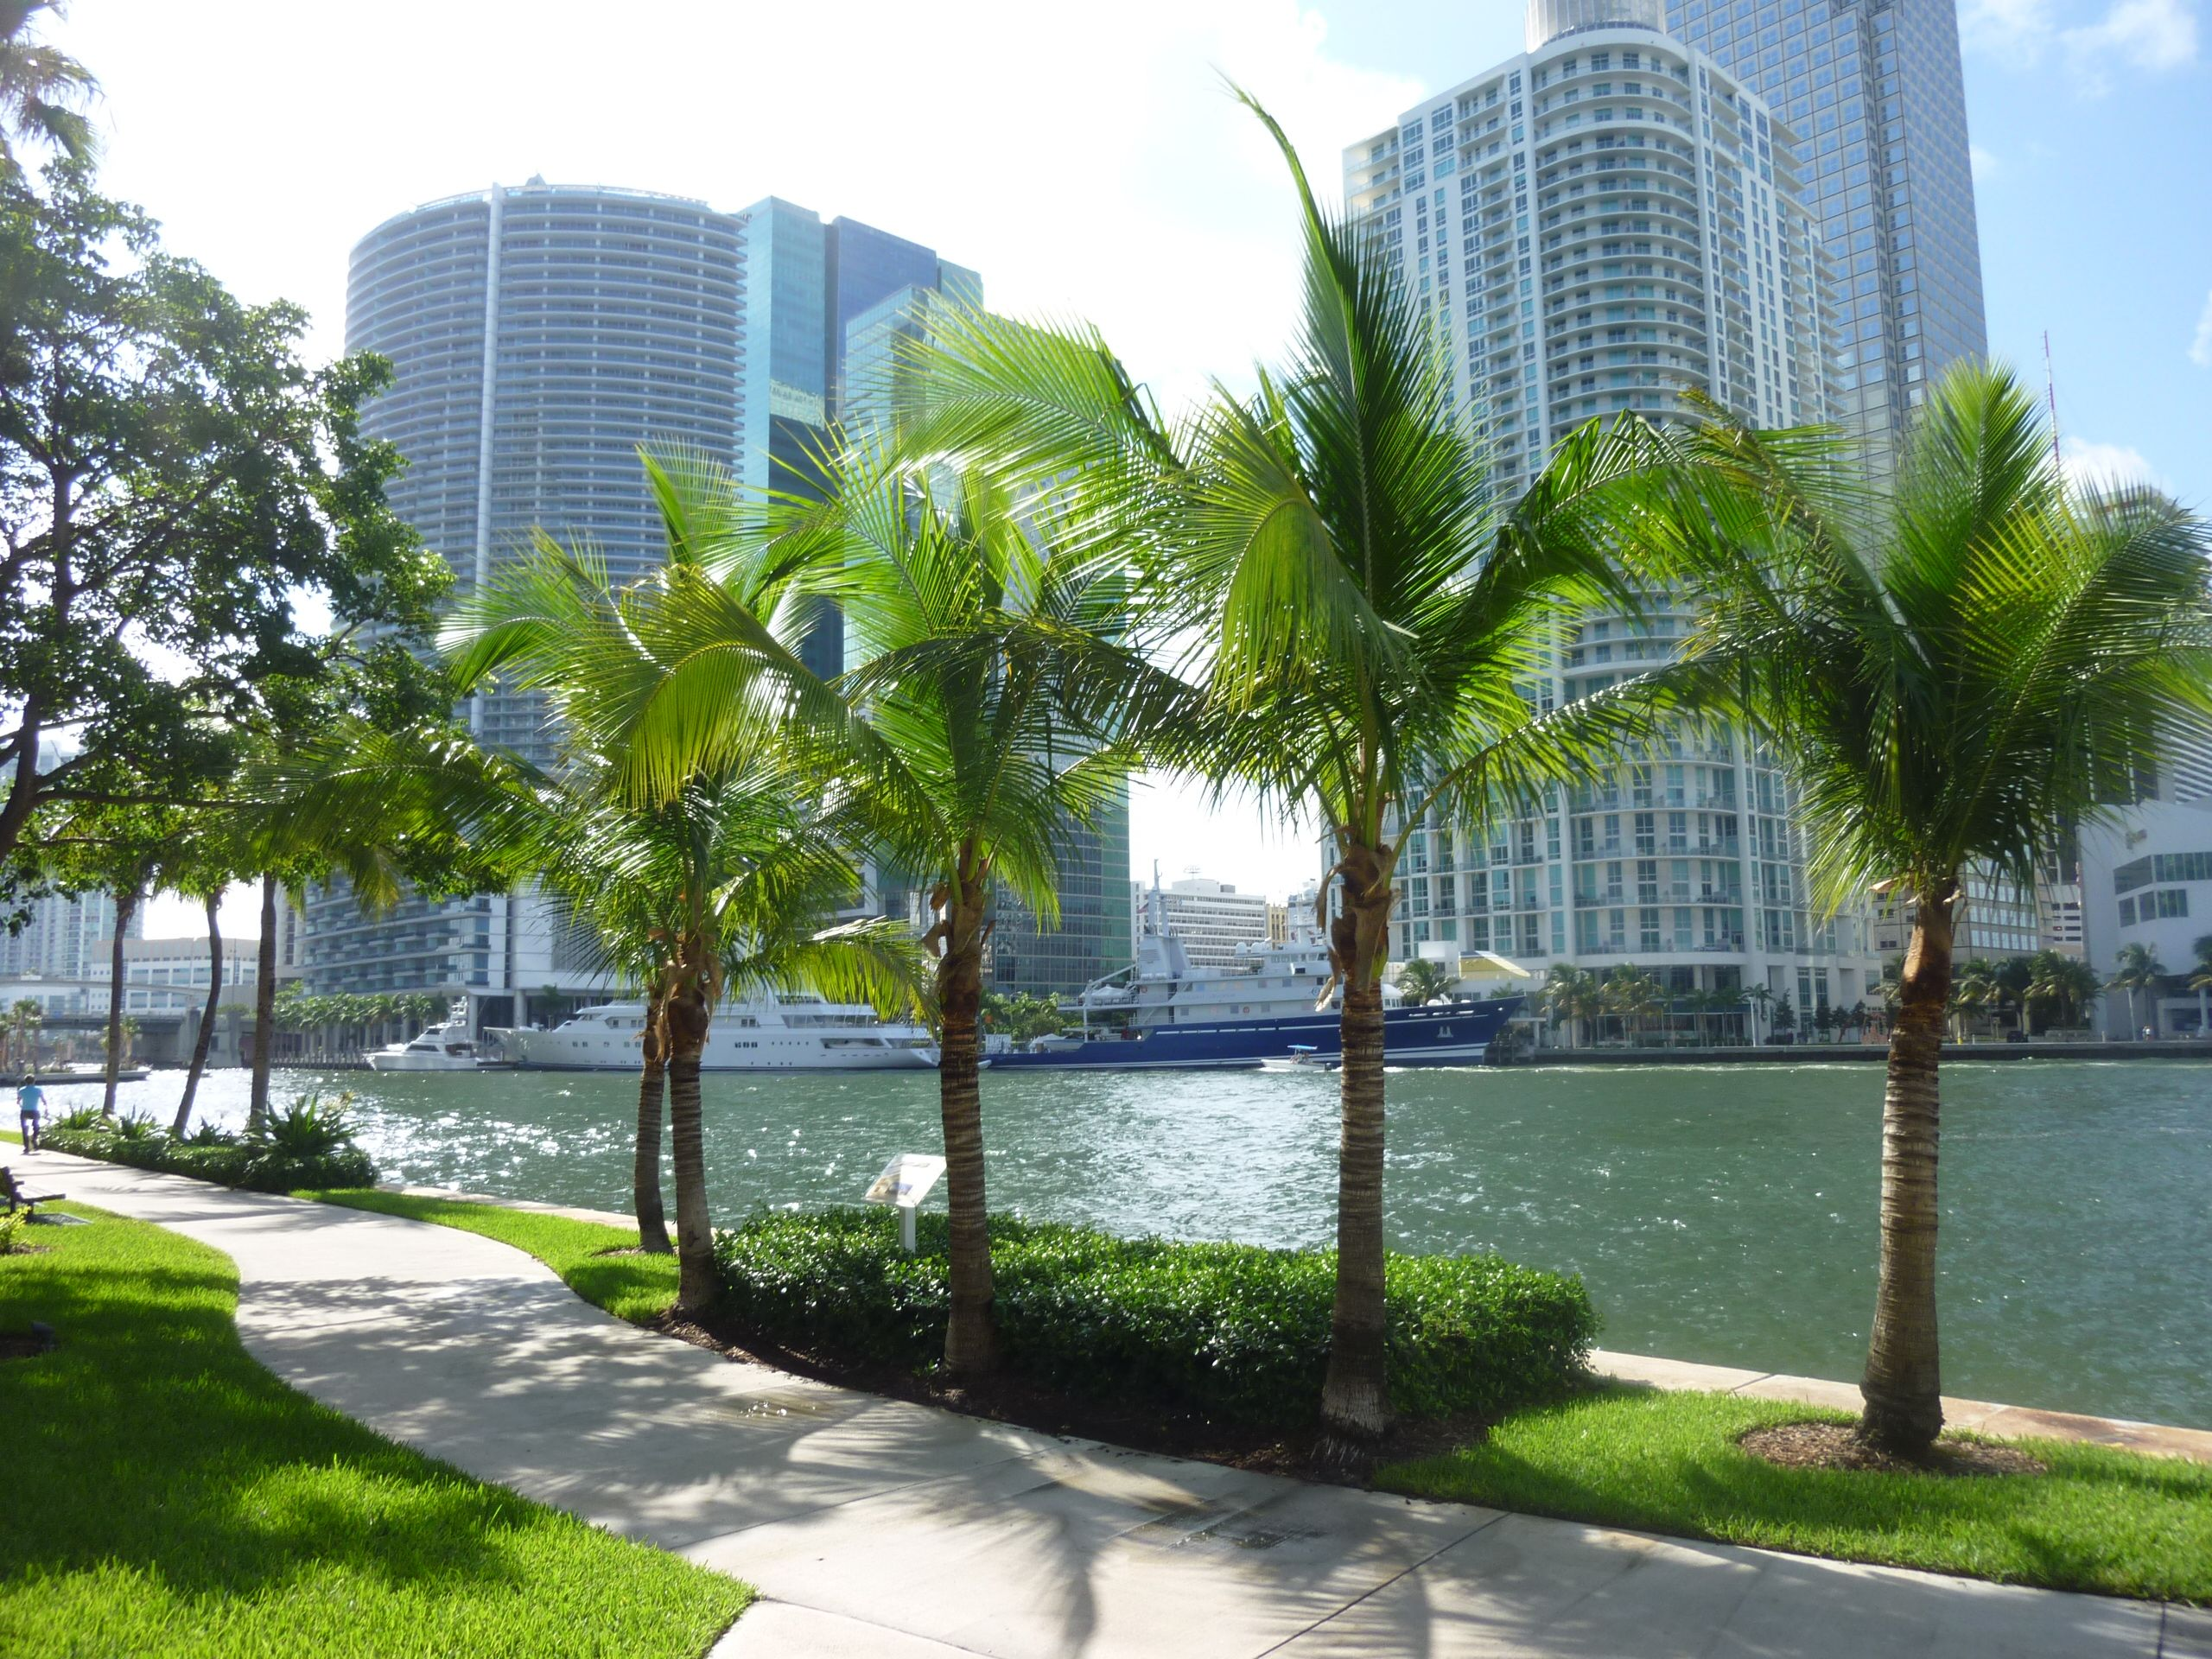 Brickell bay places sunshine state favorite places